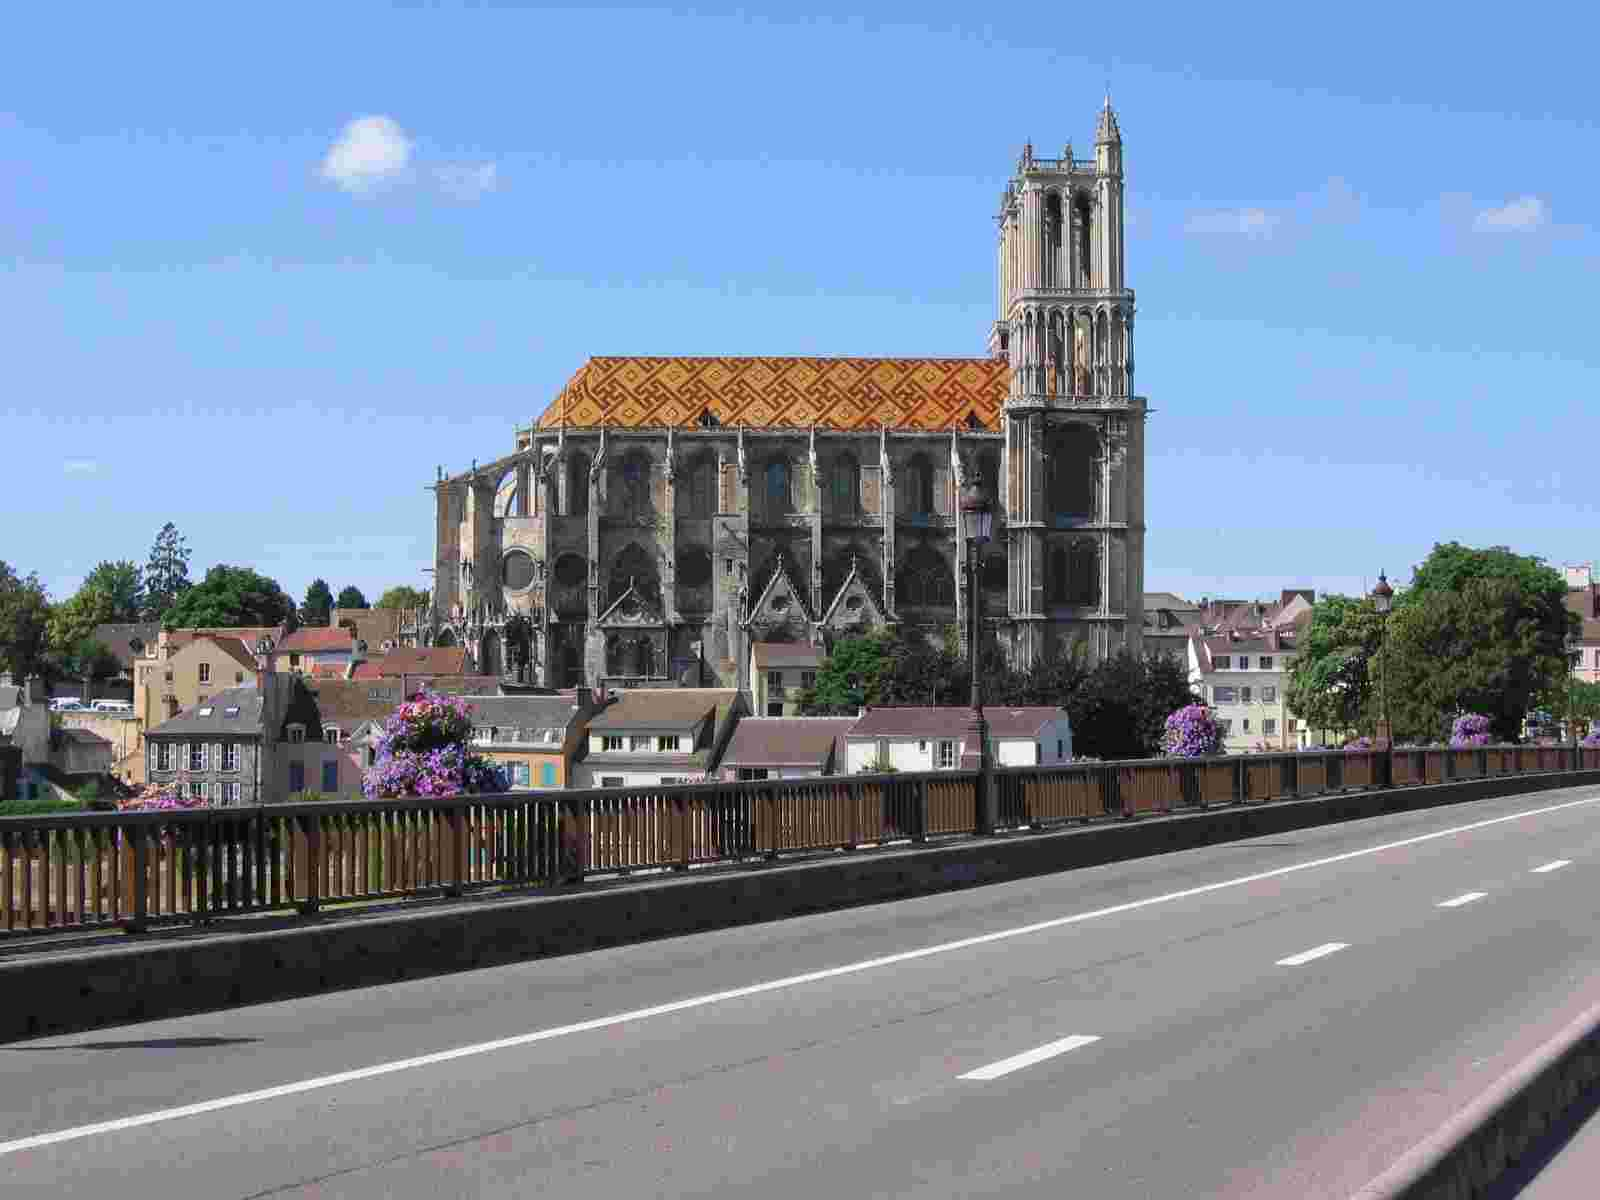 Manthes la Jolie - La Cathédrale